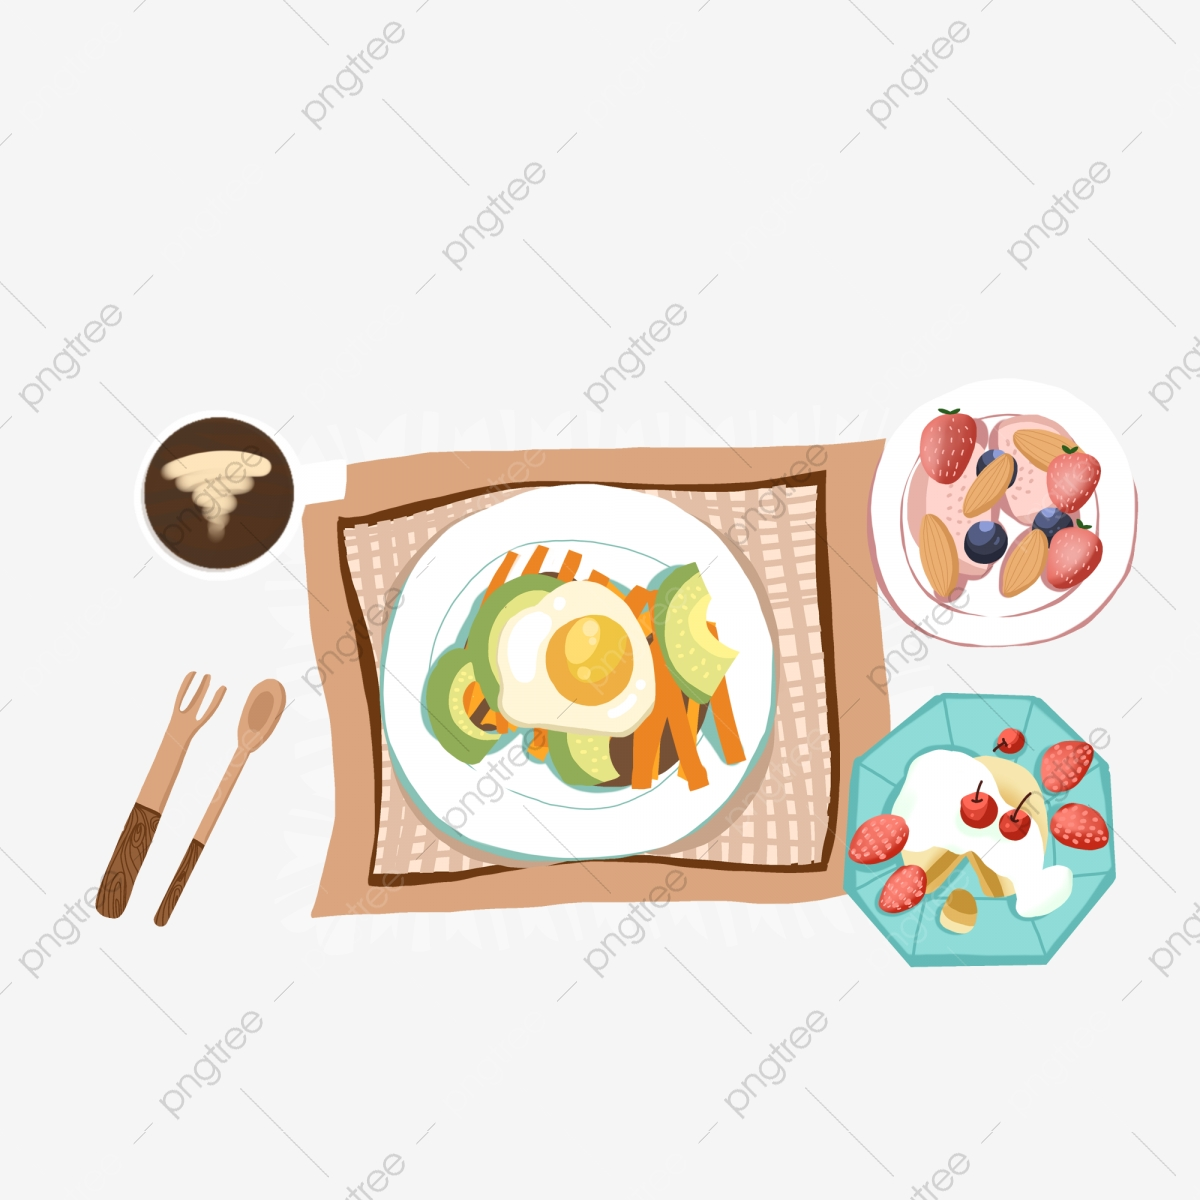 hight resolution of commercial use resource upgrade to premium plan and get license authorization upgradenow nutritious breakfast breakfast clipart